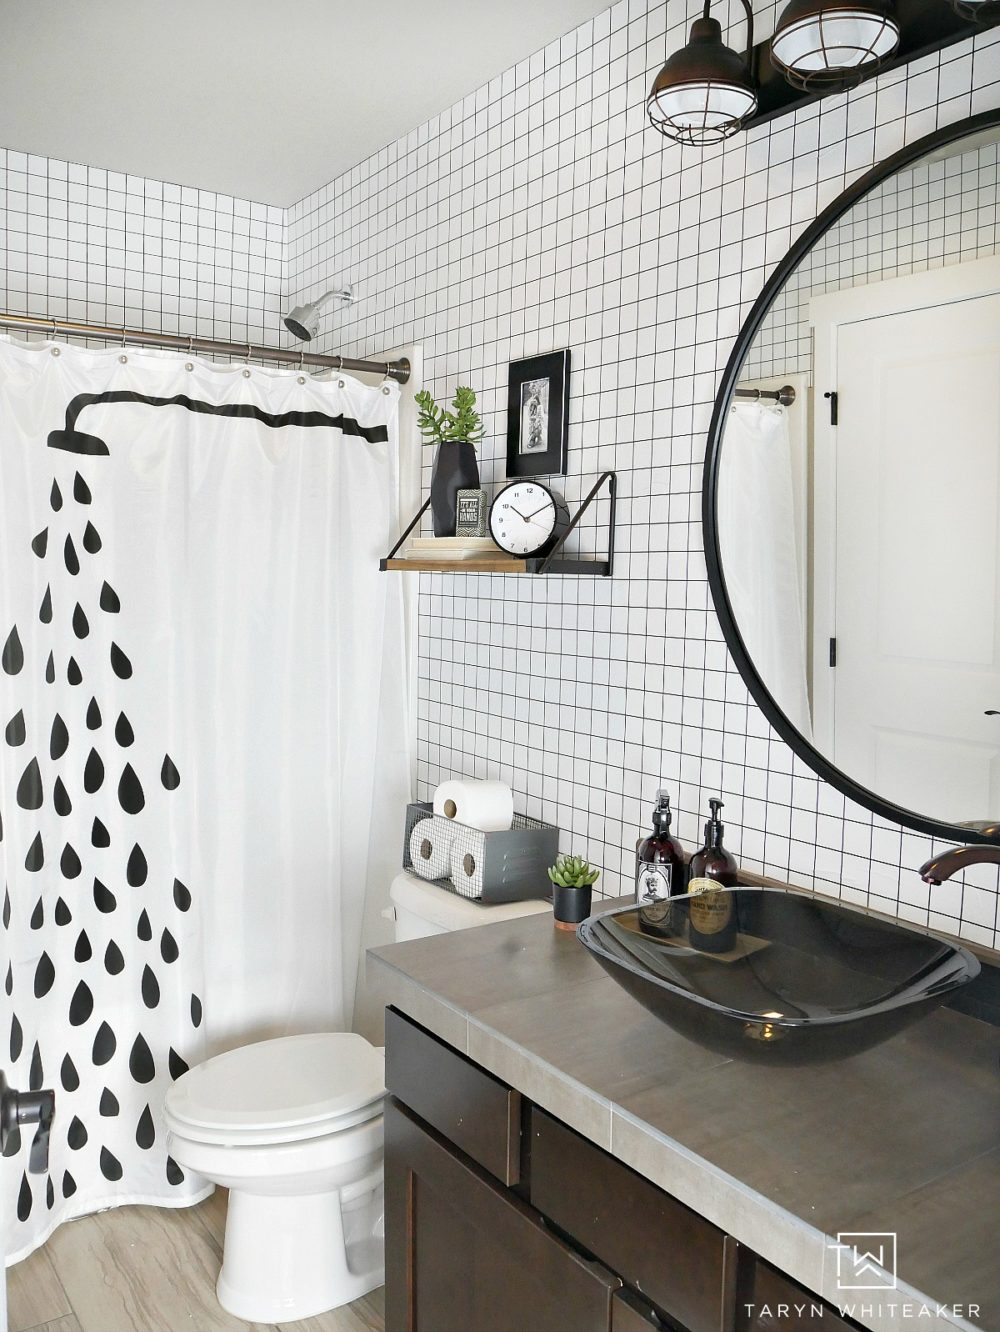 Easily transform you boring space into this black and white geometric bathroom using grid patterned wallpaper and modern industrial accents! Click for the before photos, you won't be disappointed!